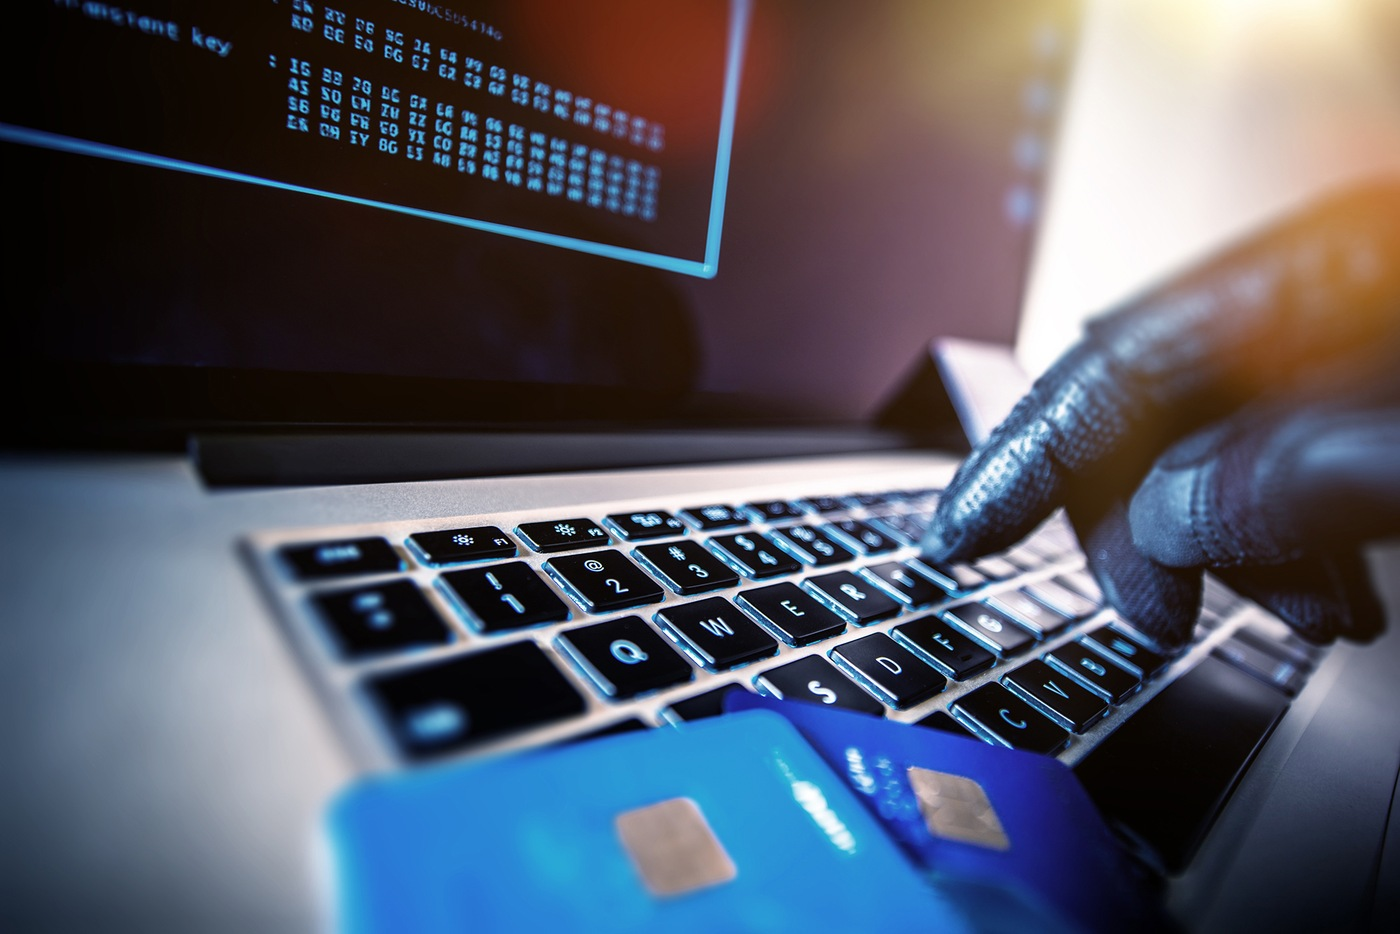 Stock image depicting gloved hands typing on a computer laptop with credit cards in the foreground.